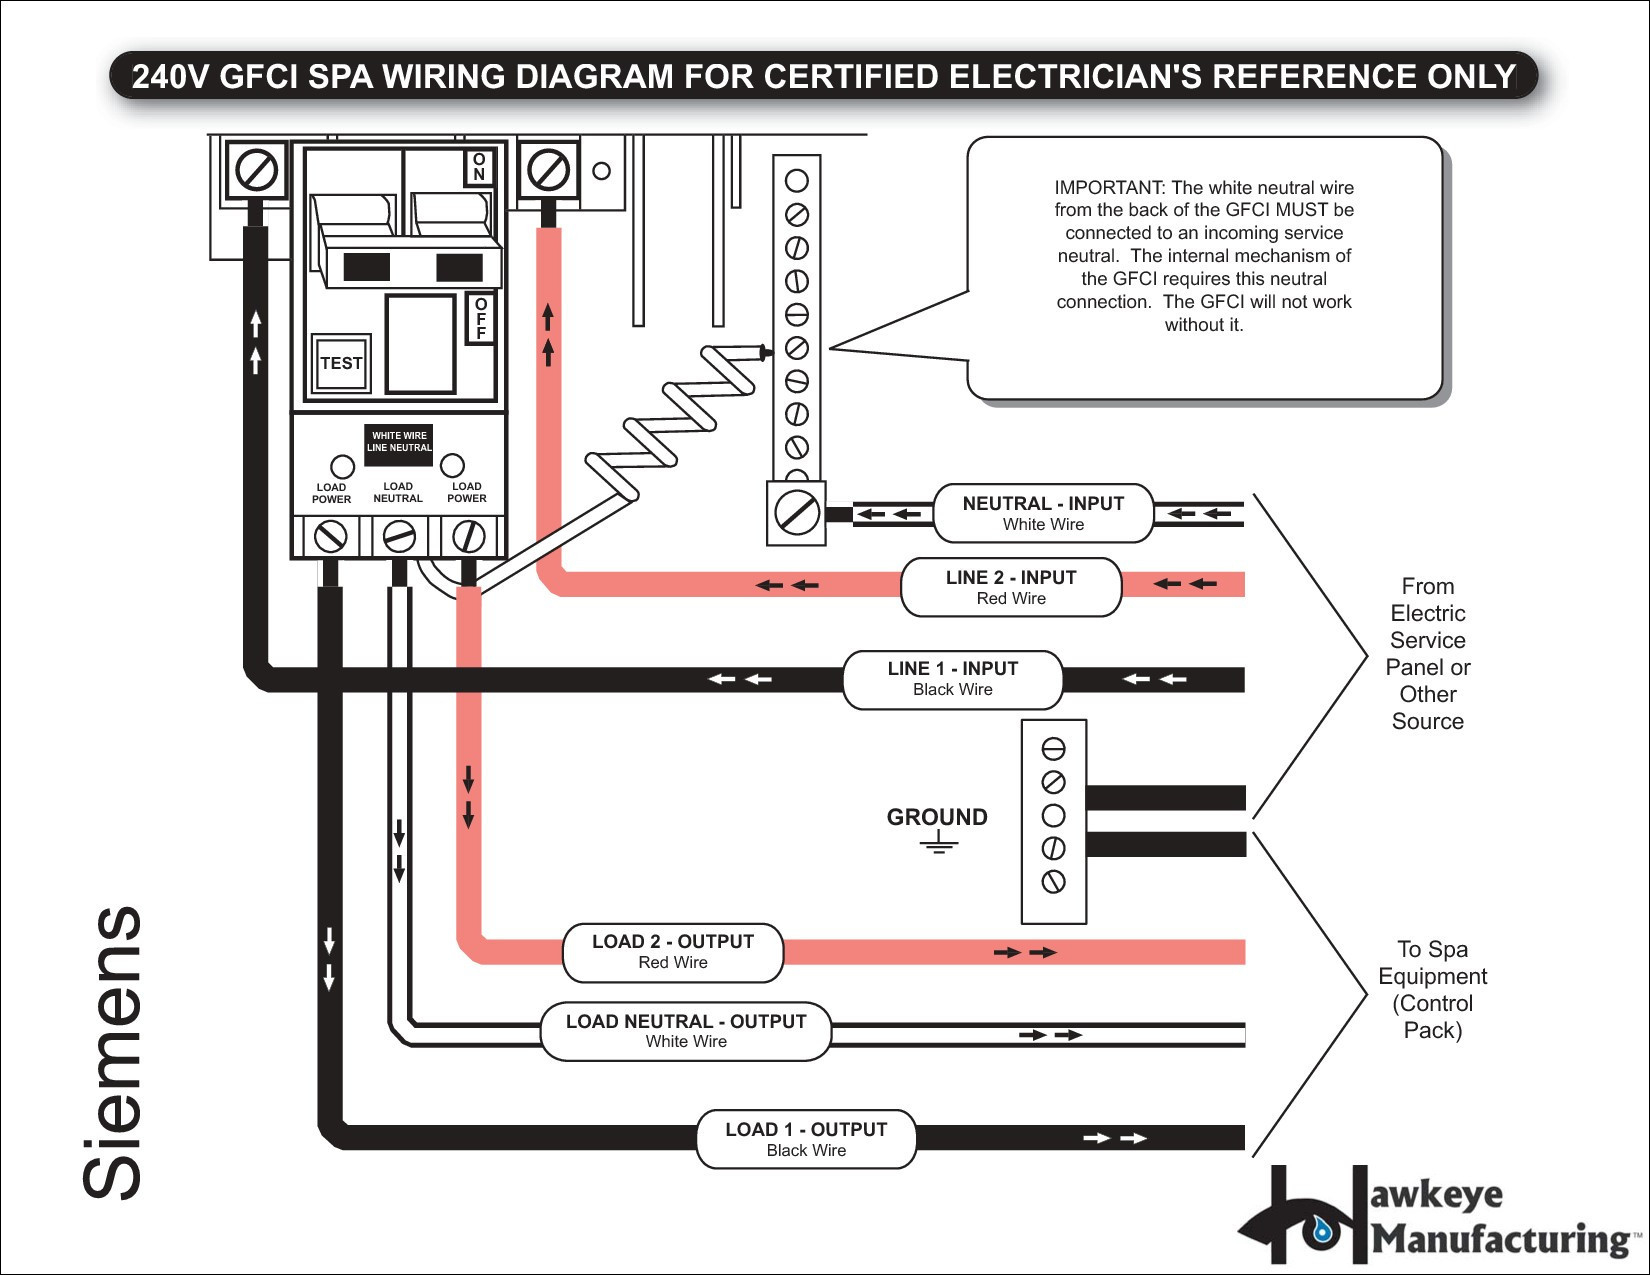 zpep_4409] afci breaker wiring diagram preview wiring diagram -  forkliftdiagram.lafabricadechocolate.es  diagram database website full edition - lafabricadechocolate.es